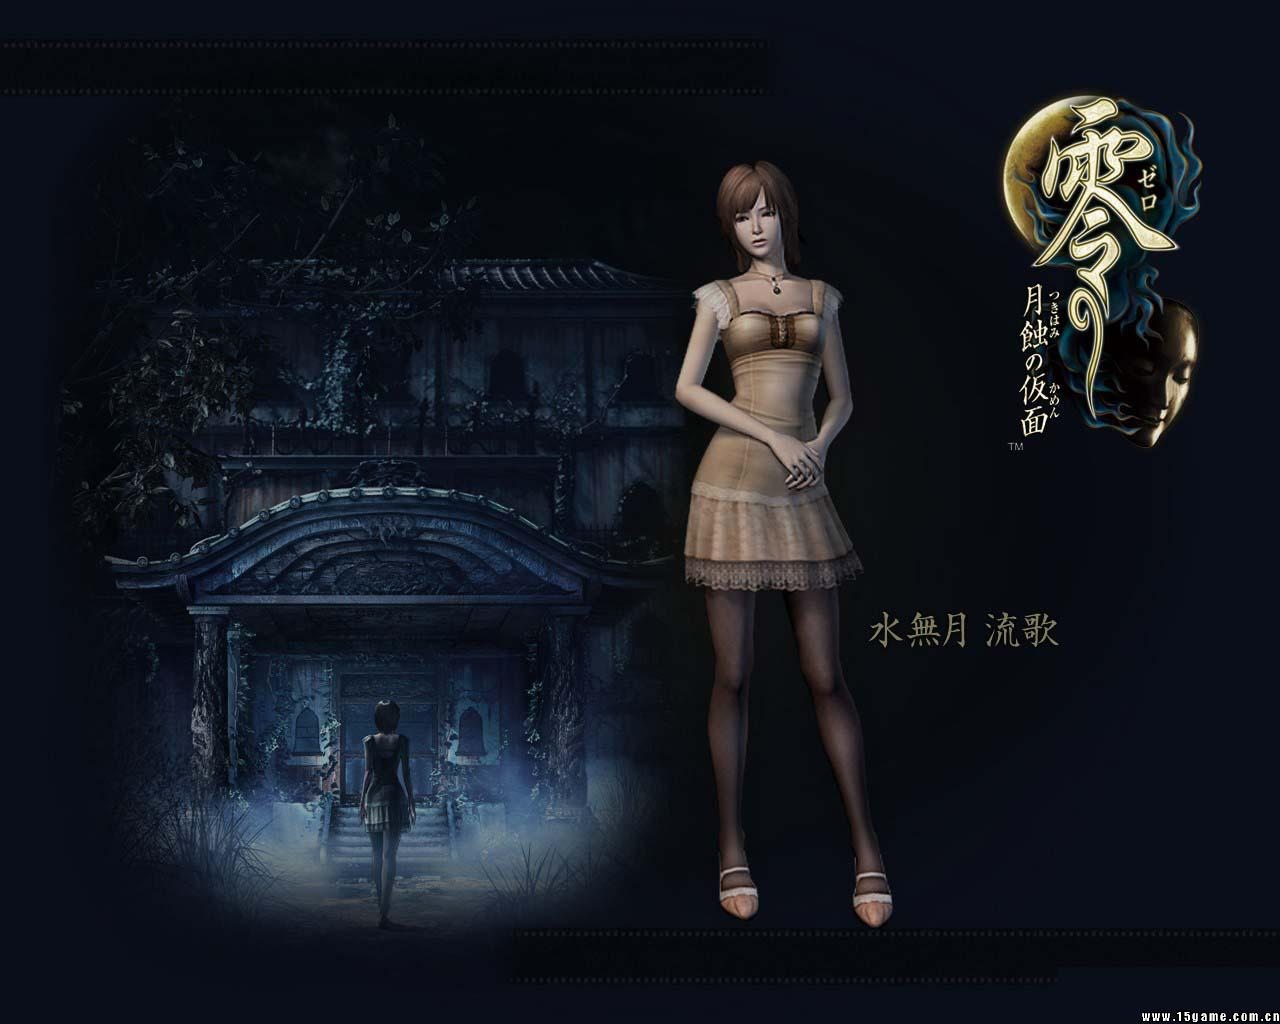 Wallpapers Fatal Frame Games